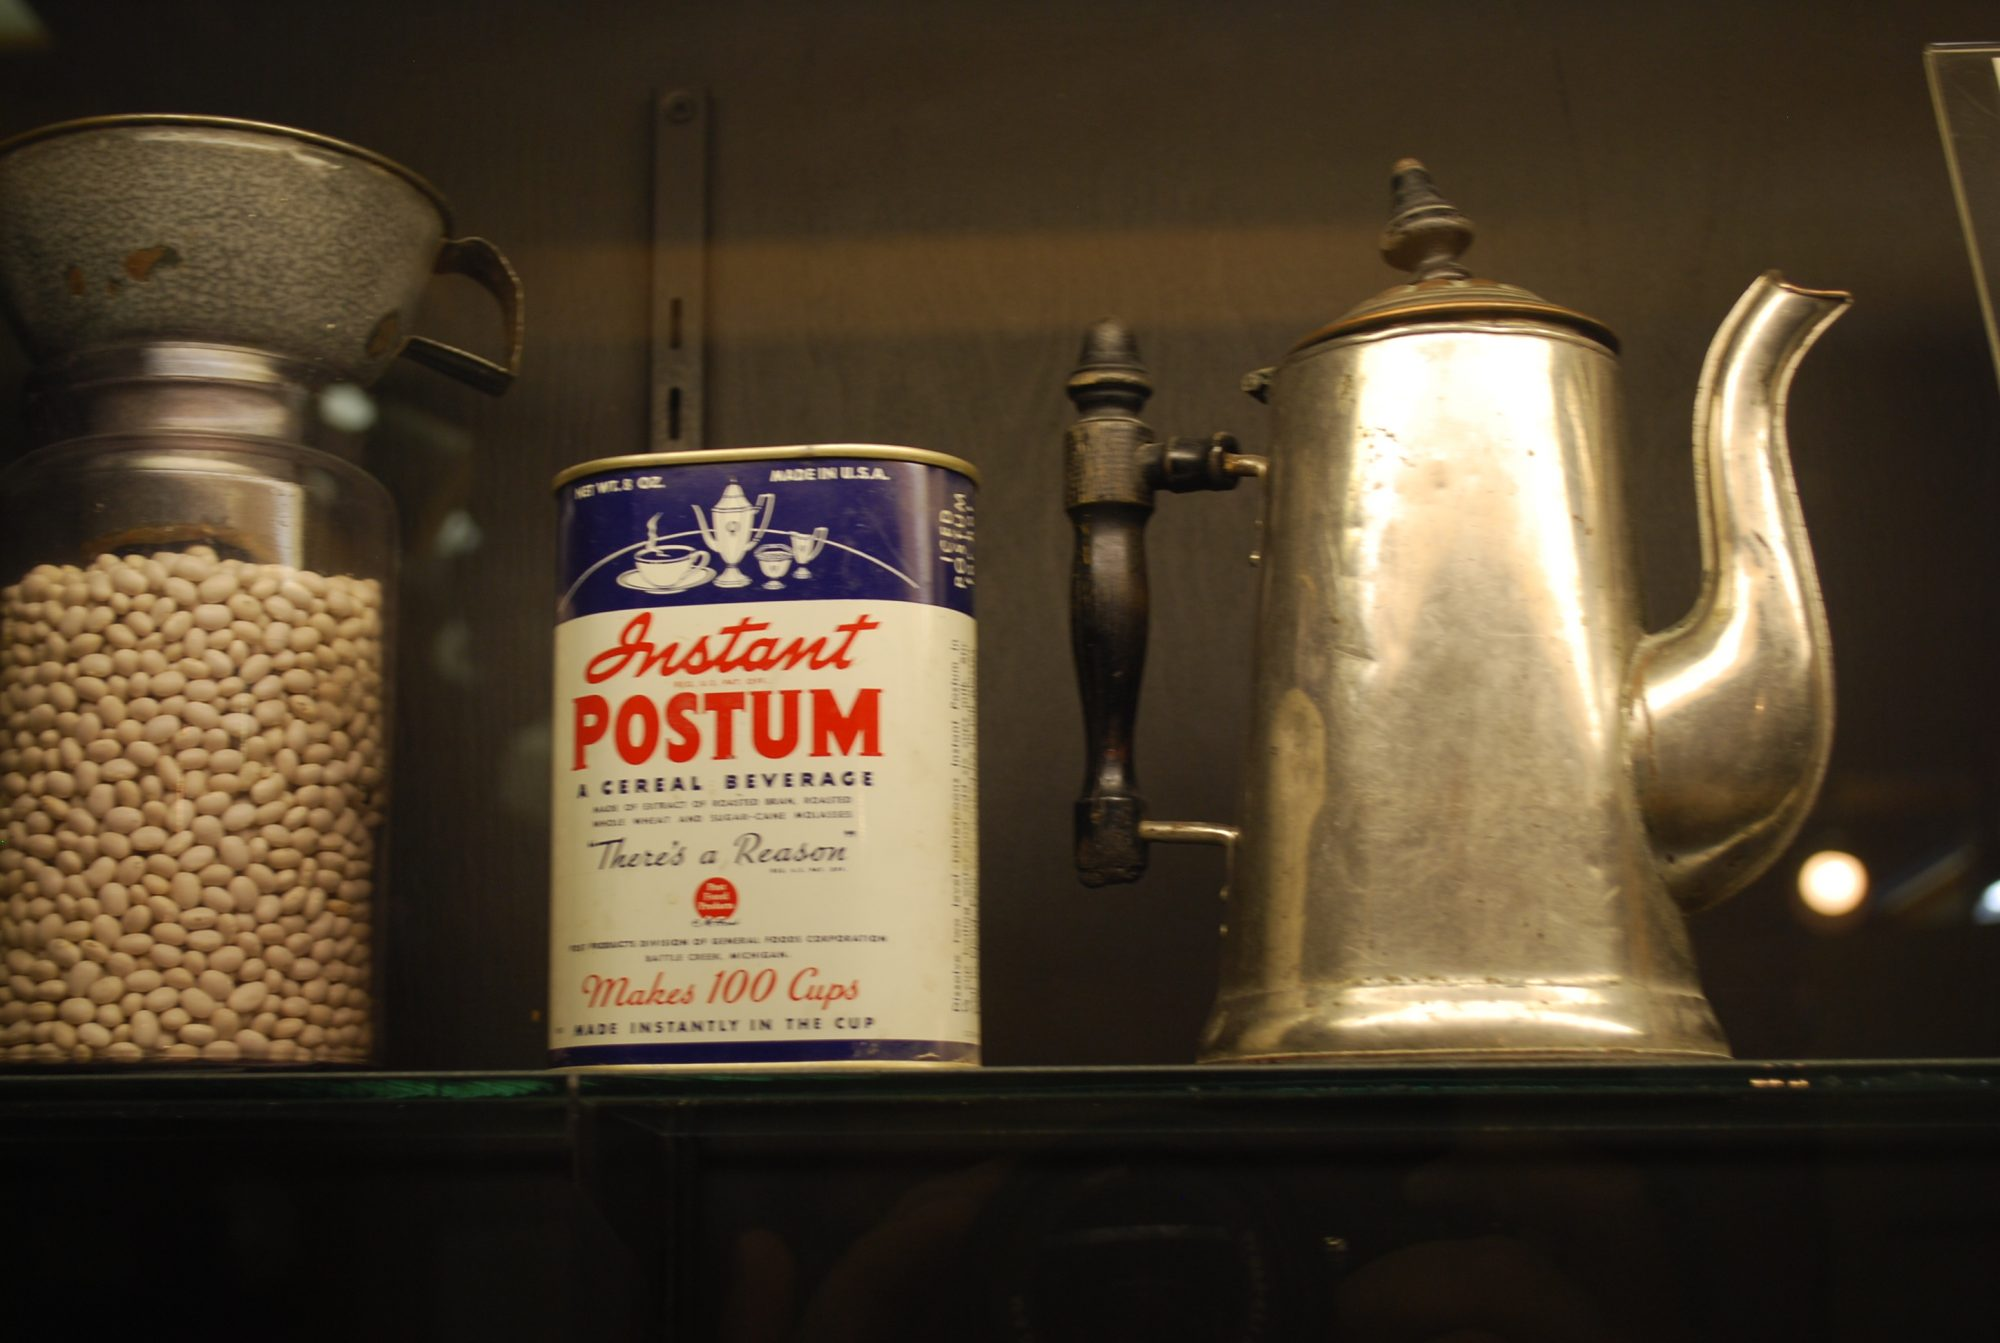 EC: The Unlikely Return of Postum, Mormonism's Favorite Coffee Substitute